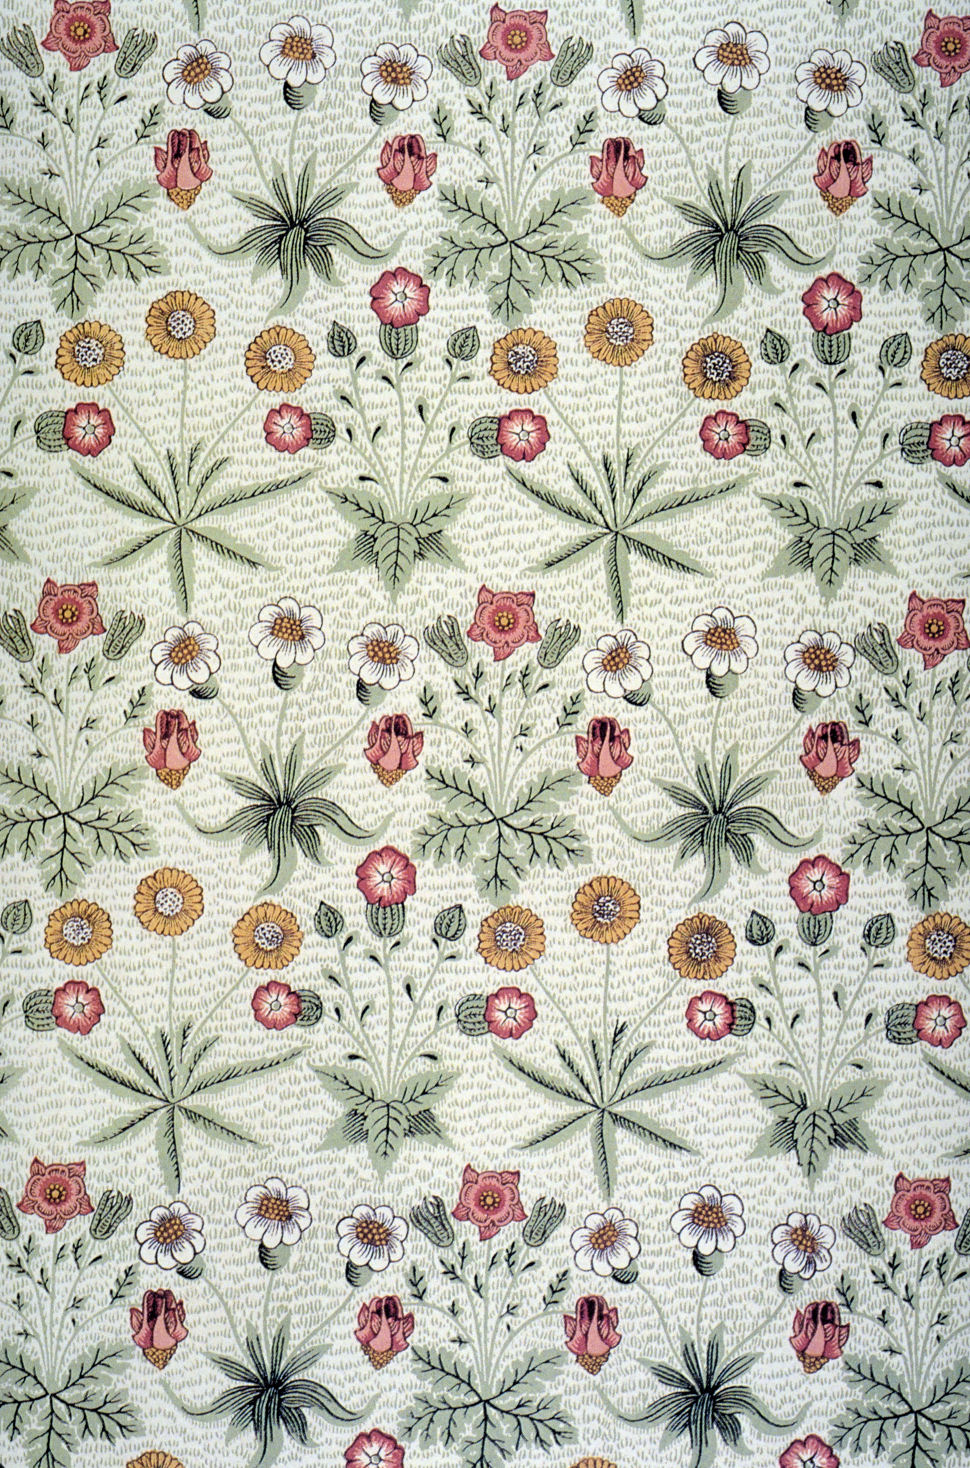 Daisy pattern wallpaper - photo#28